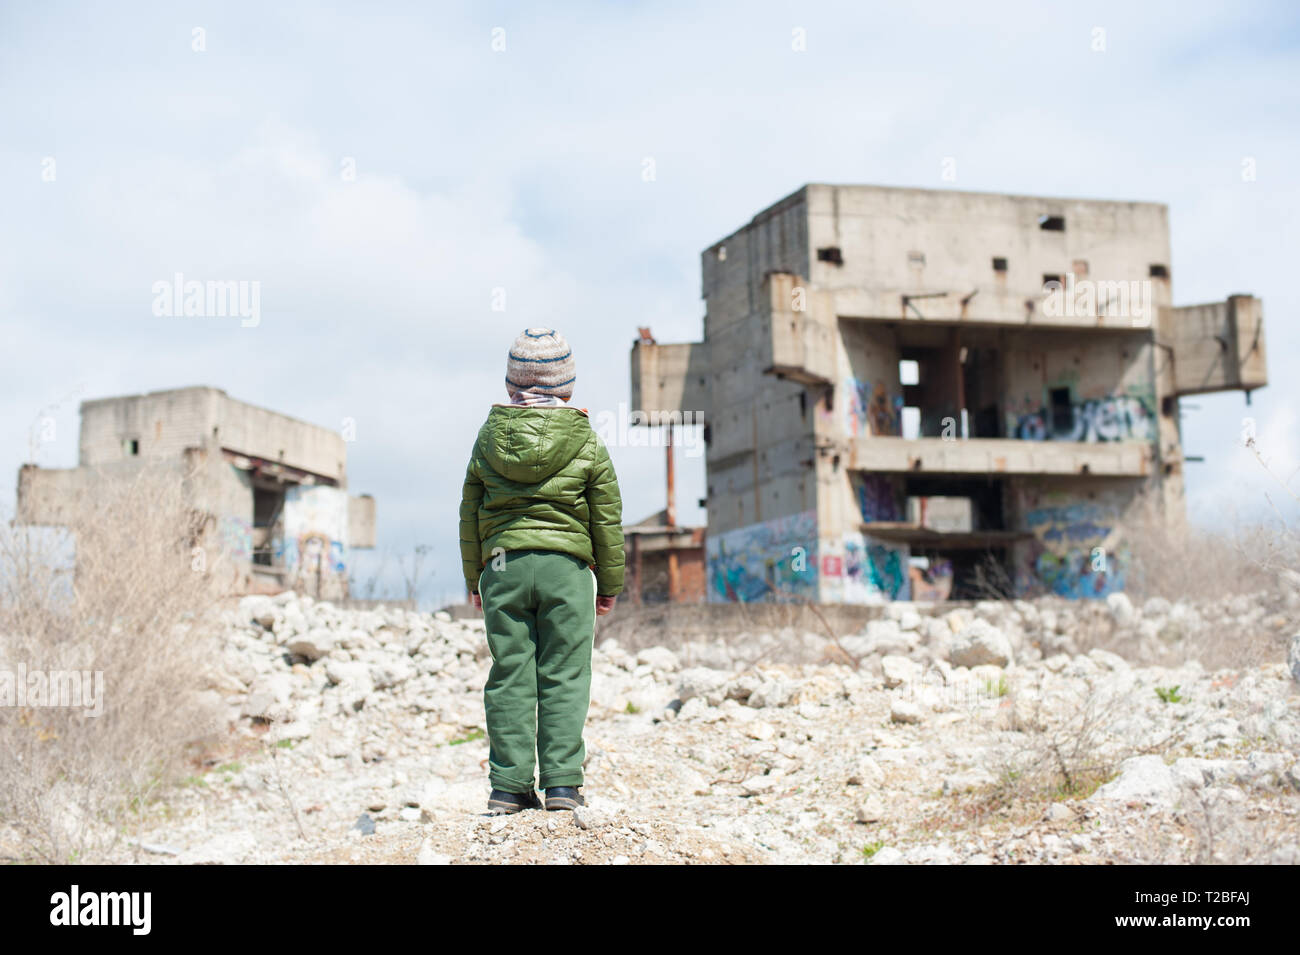 one little child in green jacket standing on ruins of destroyed buildings in war zone - Stock Image